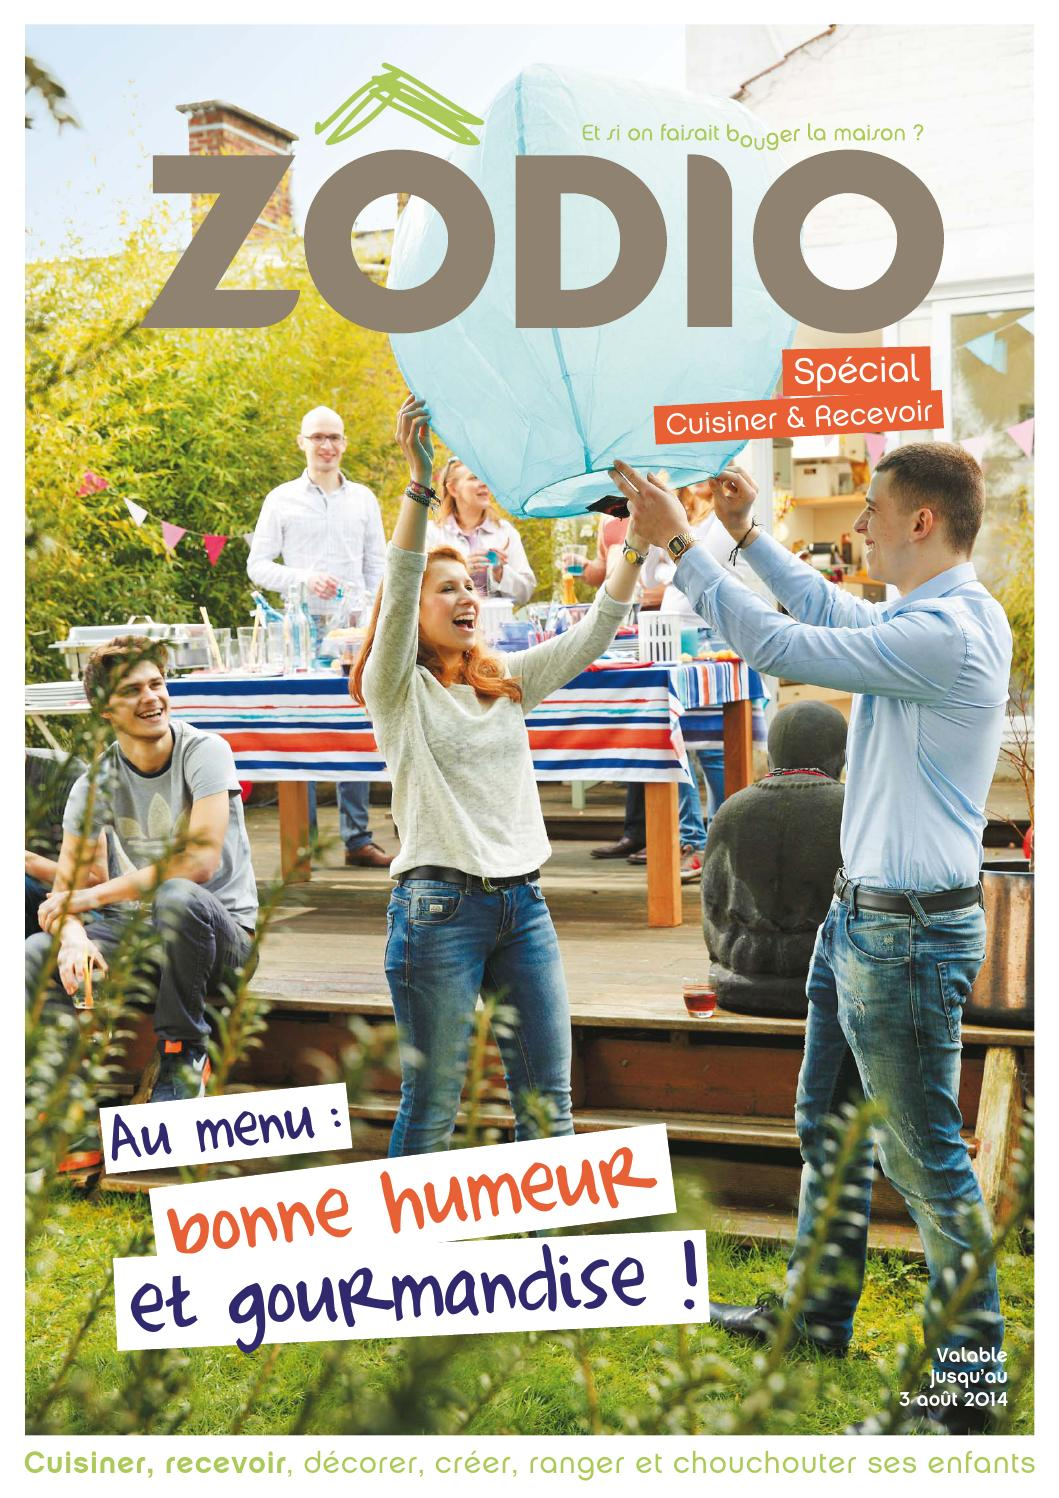 Catalogue zodio jusqu 39 au by joe monroe issuu for Zodio cours cuisine